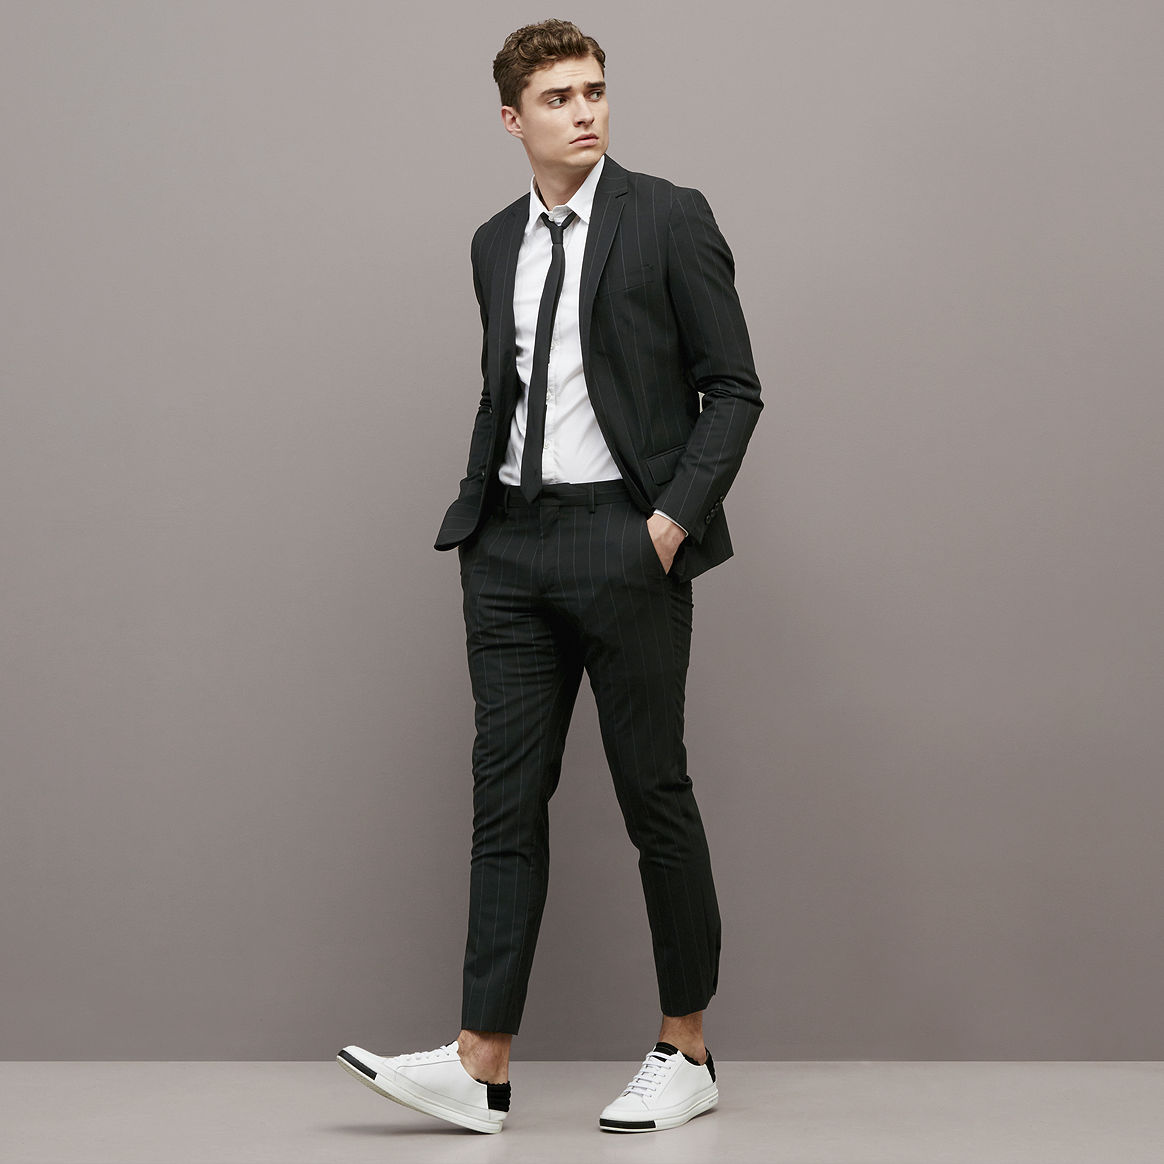 All you need for special occasions is a pair of slim fit suit. we will tell you why